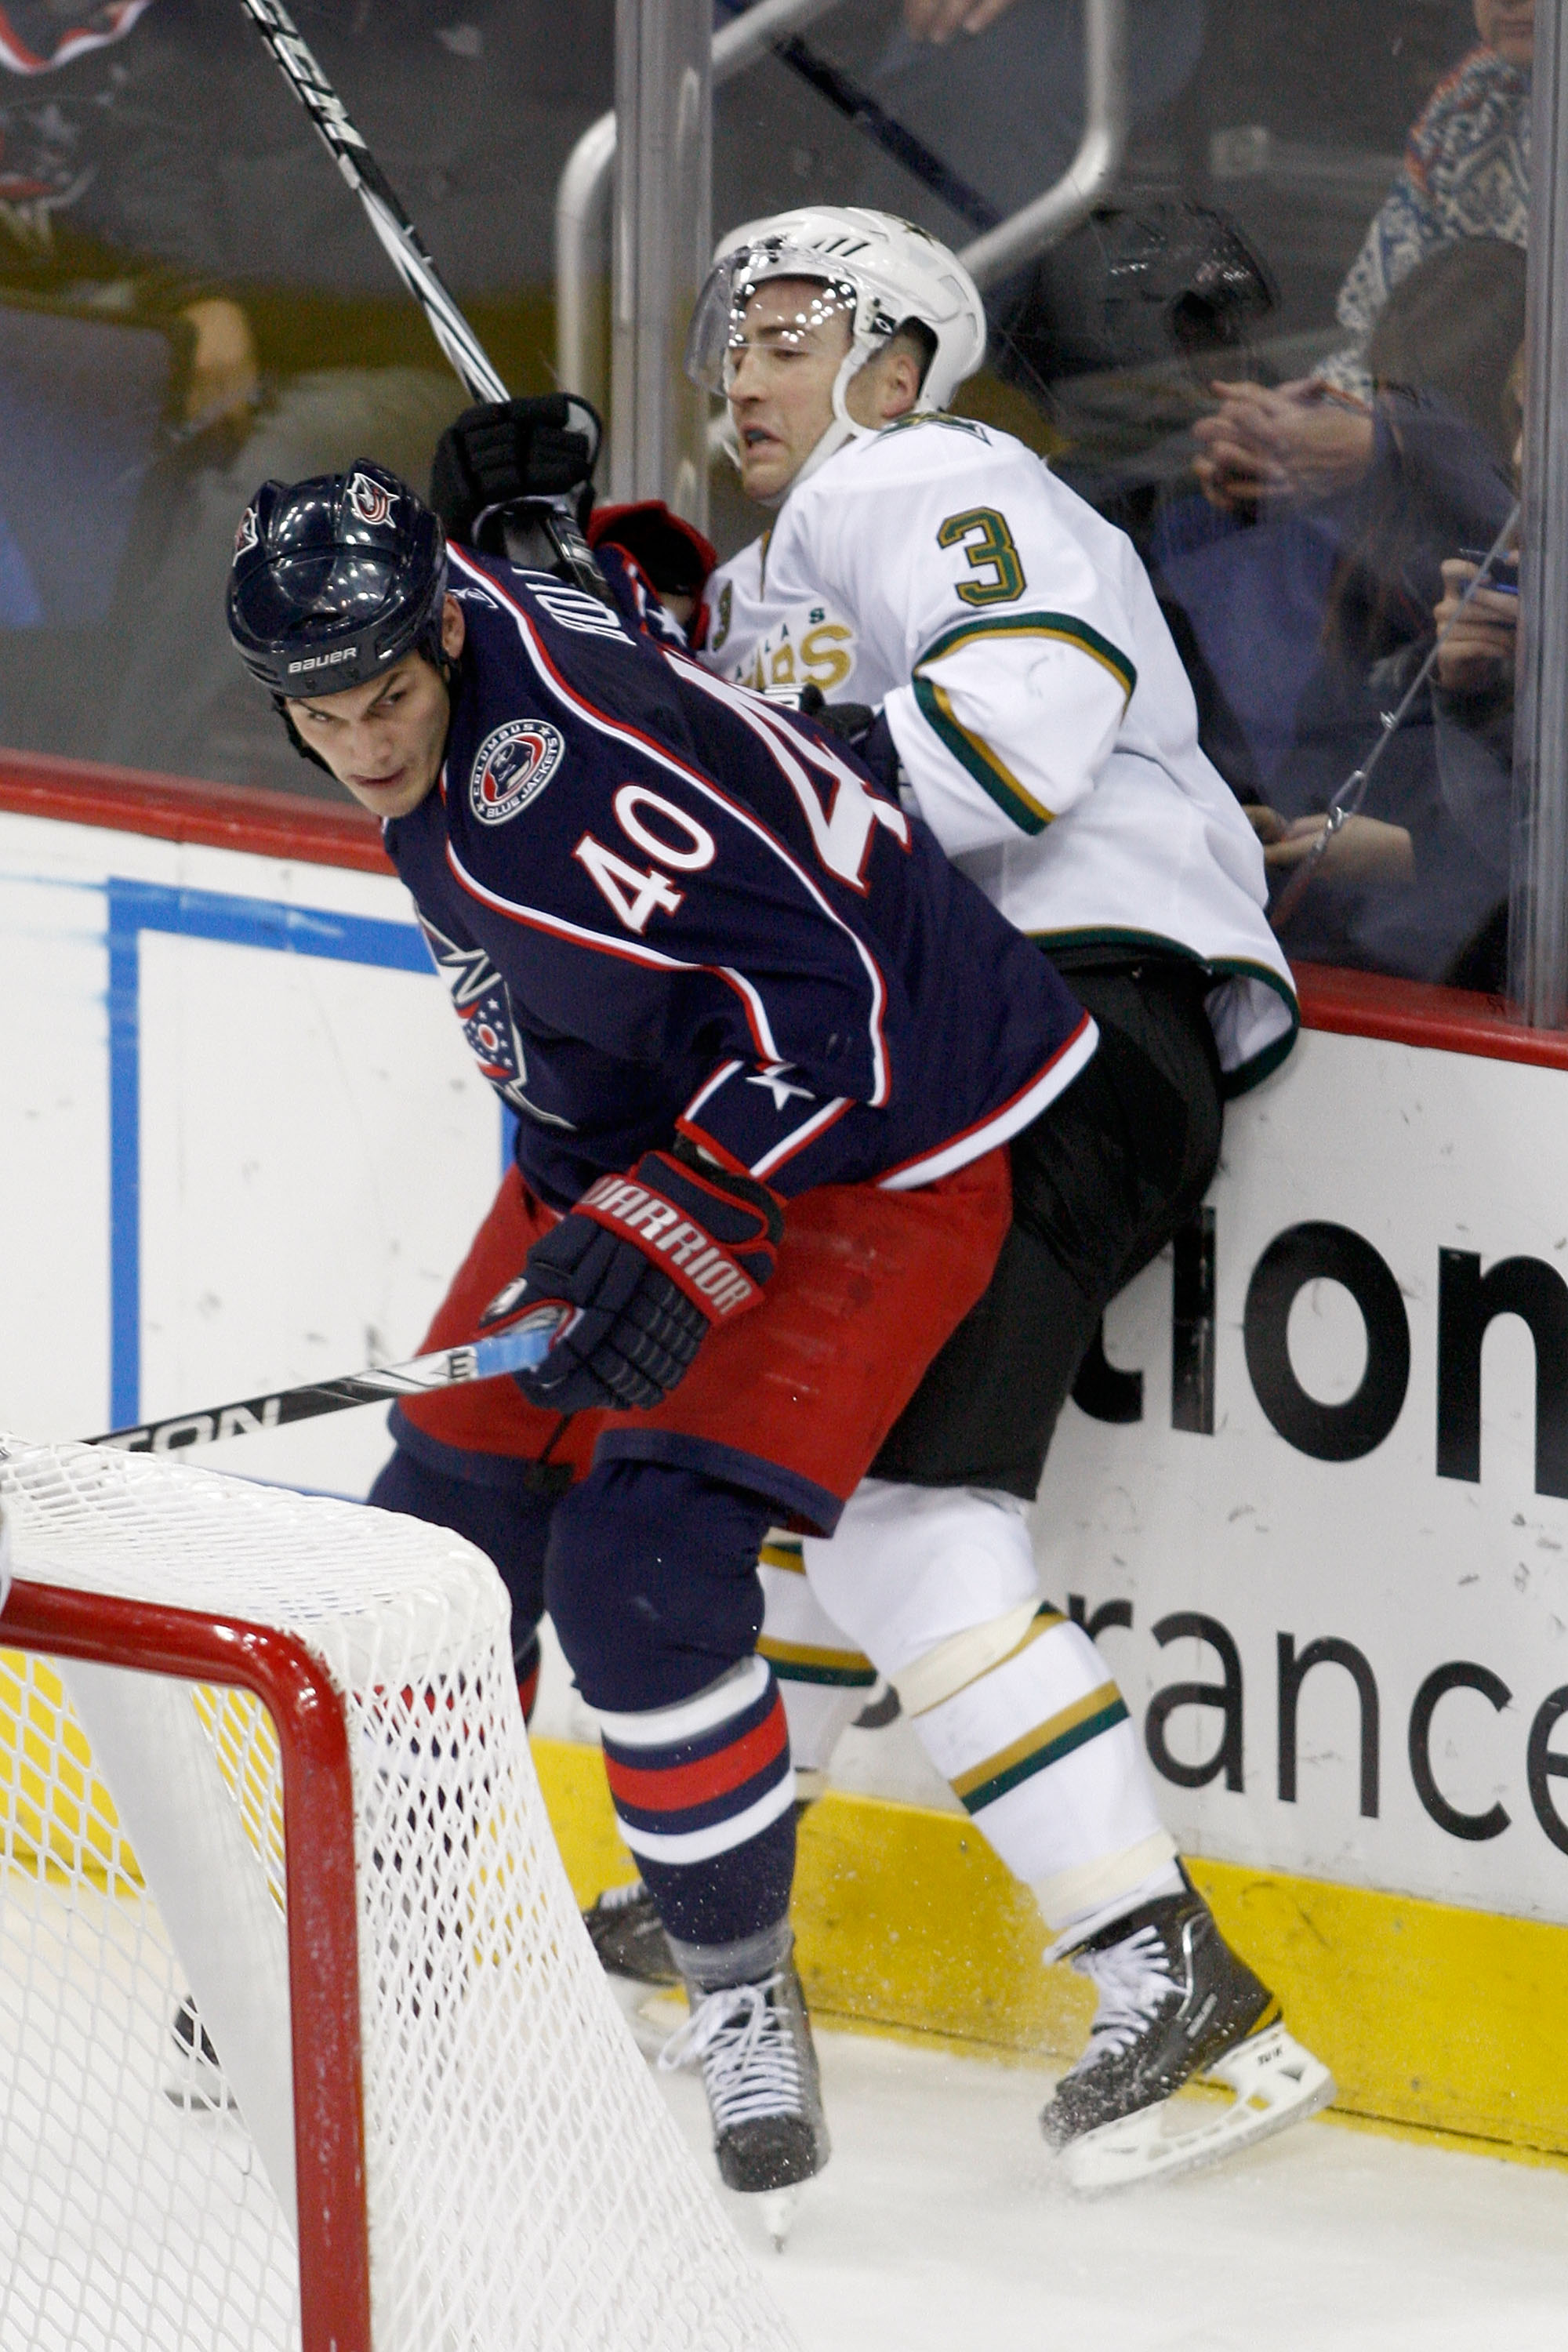 COLUMBUS, OH - DECEMBER 6:  Jared Boll #40 of the Columbus Blue Jackets checks Stephane Robidas #3 of the Dallas Stars during the third period on December 6, 2010 at Nationwide Arena in Columbus, Ohio.  Columbus defeated Dallas 3-2 in a shootout.  (Photo